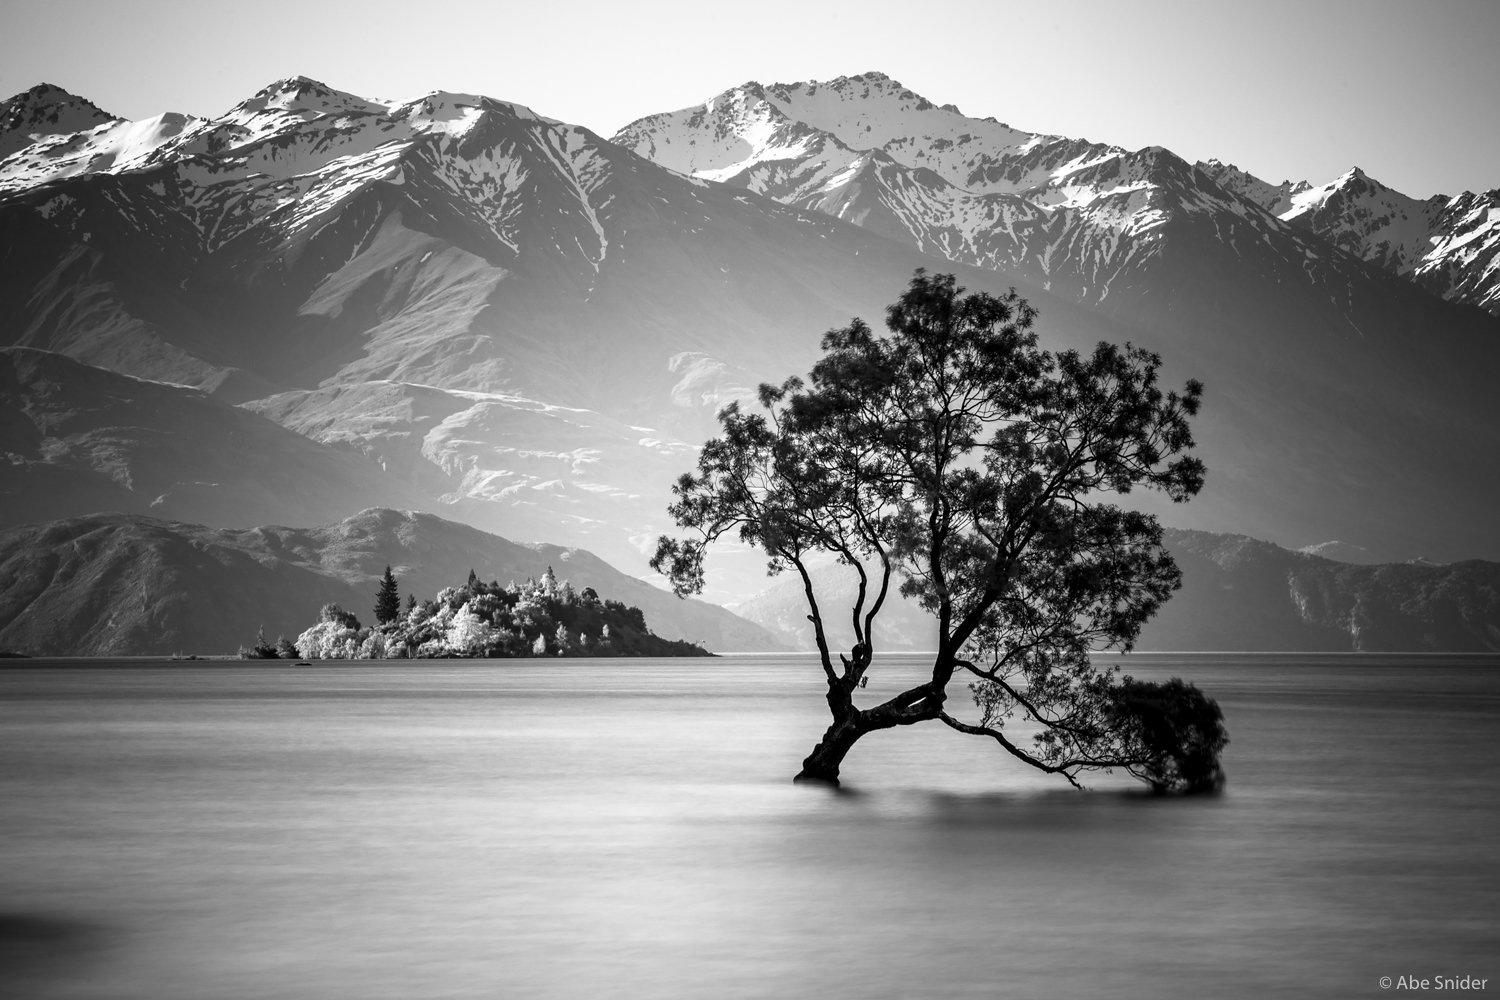 Wanaka Tree, Lake Wanaka, New Zealand   This is my winning image in Shoot The Frames December 2015 Landscape Photo Contest. Click  here  to see it on their website.